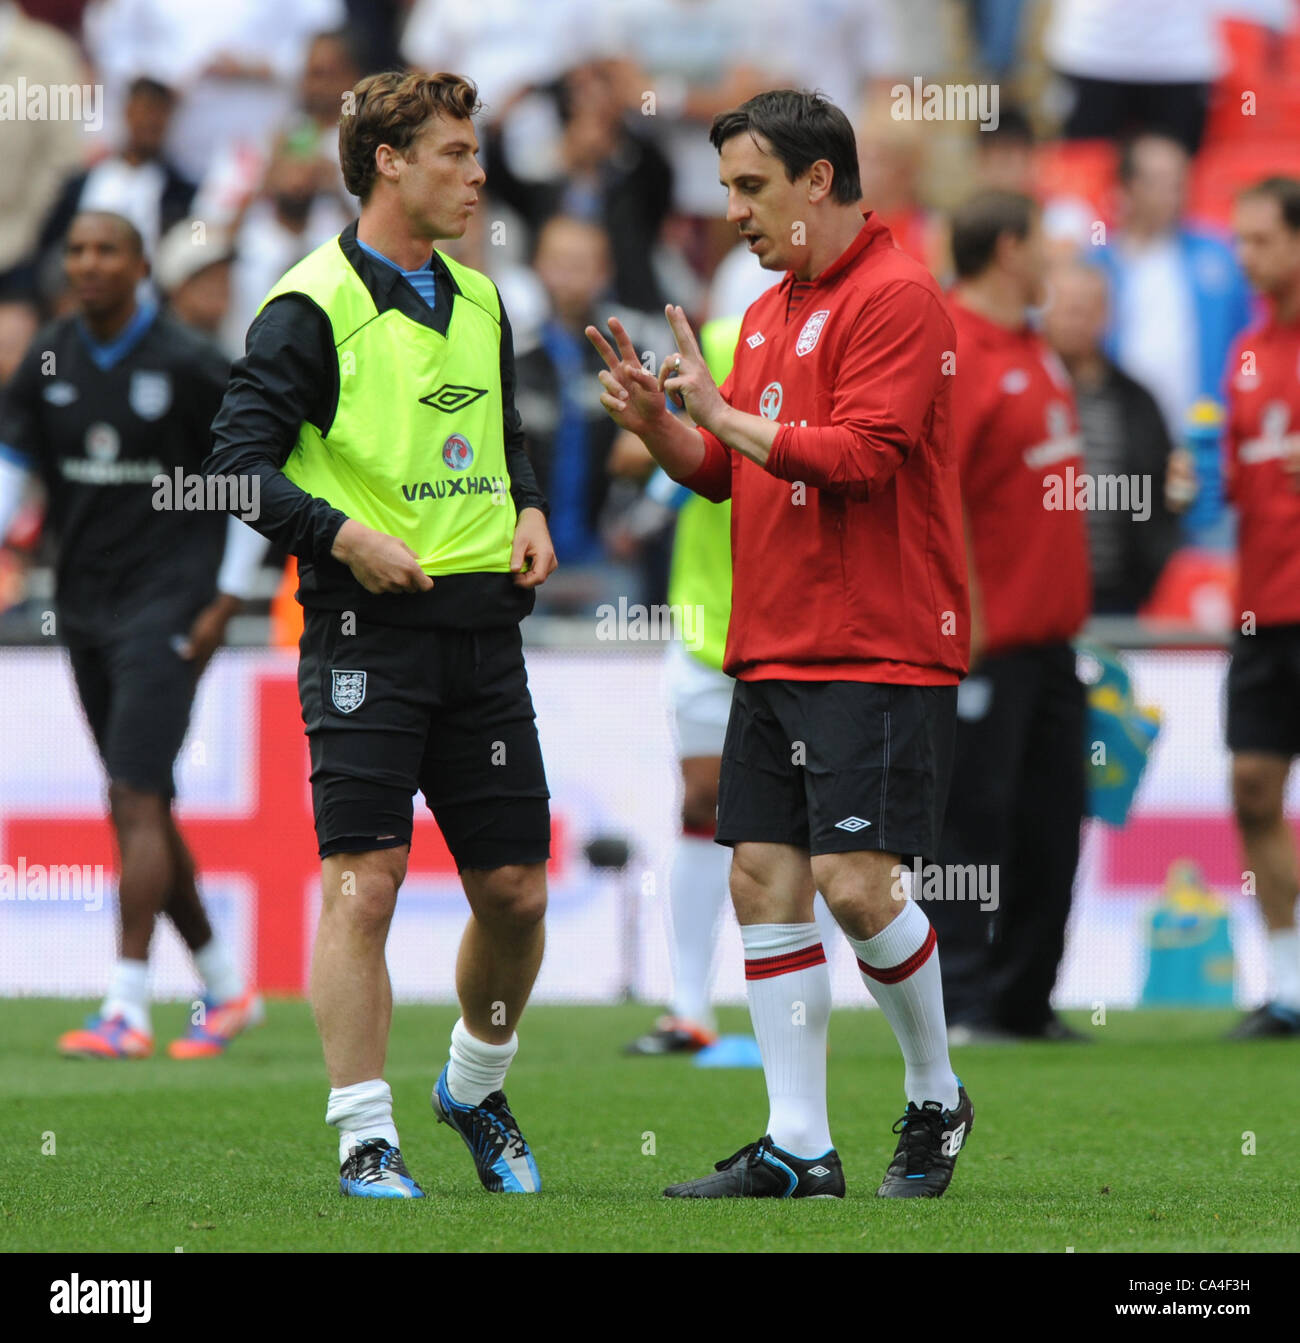 SCOTT PARKER TALKS TO GARY NEV ENGLAND WEMBLEY STADIUM LONDON ENGLAND 02 June 2012 - Stock Image